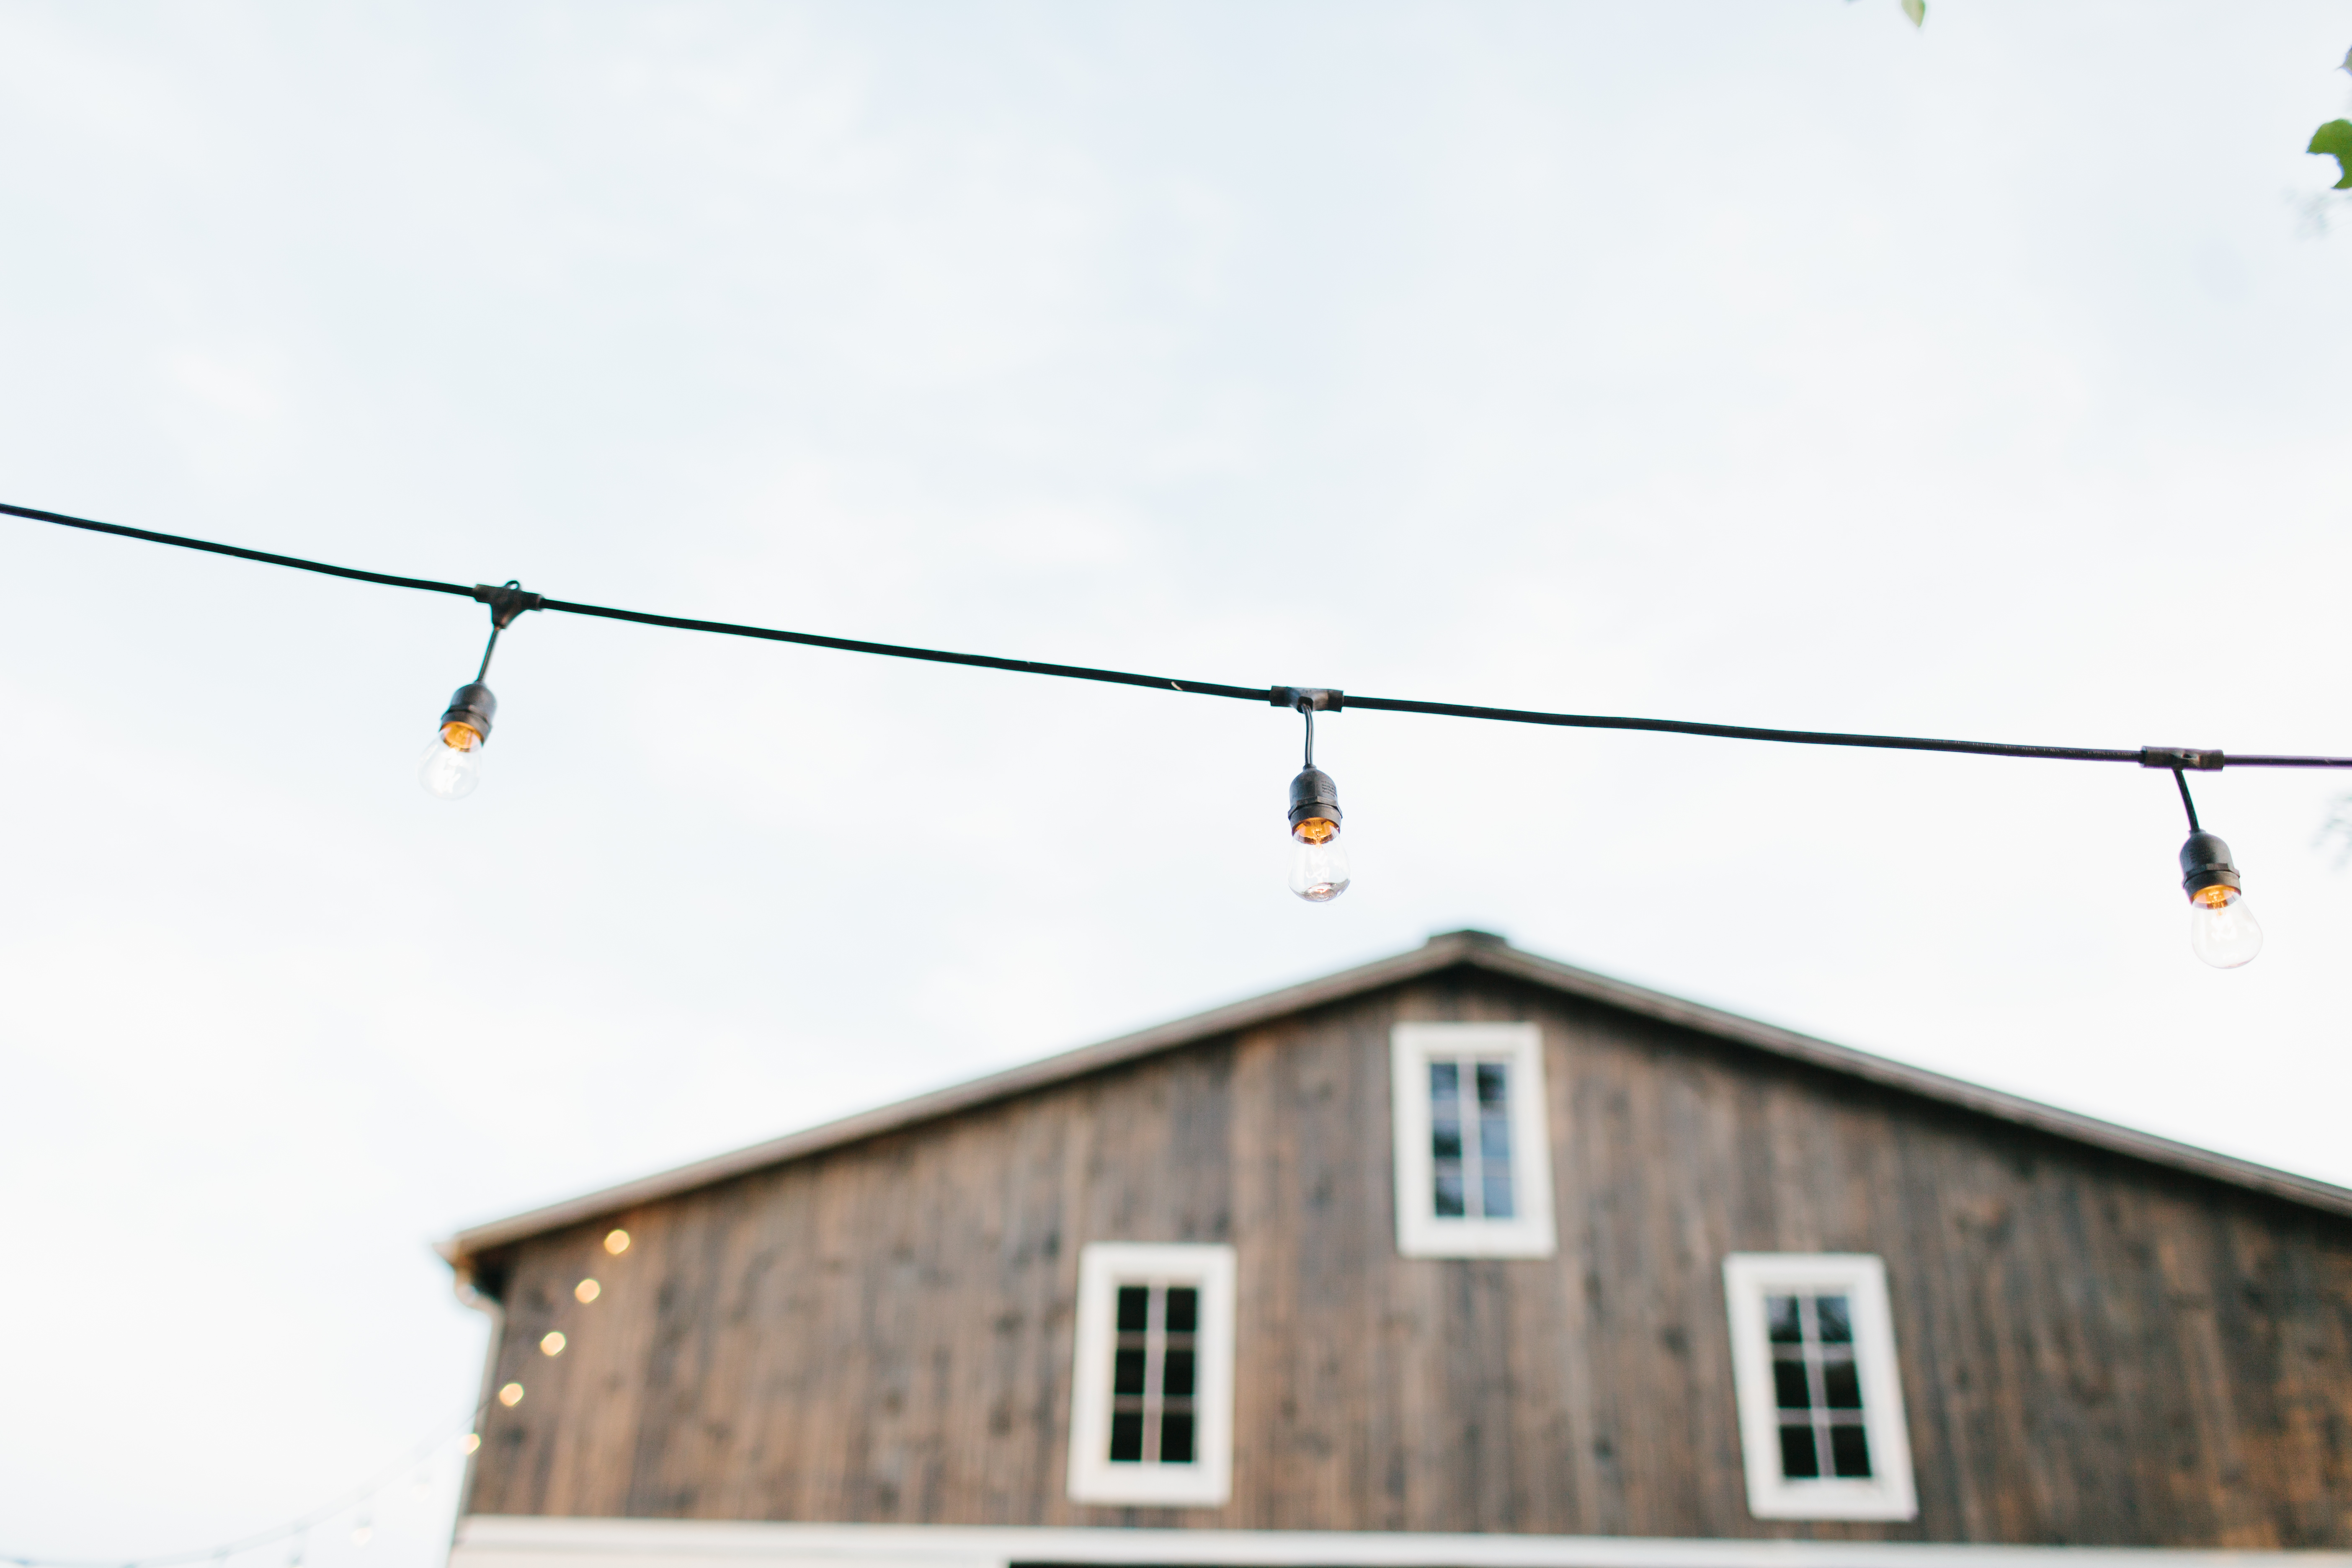 Close up of the old style lighting outside the barn.